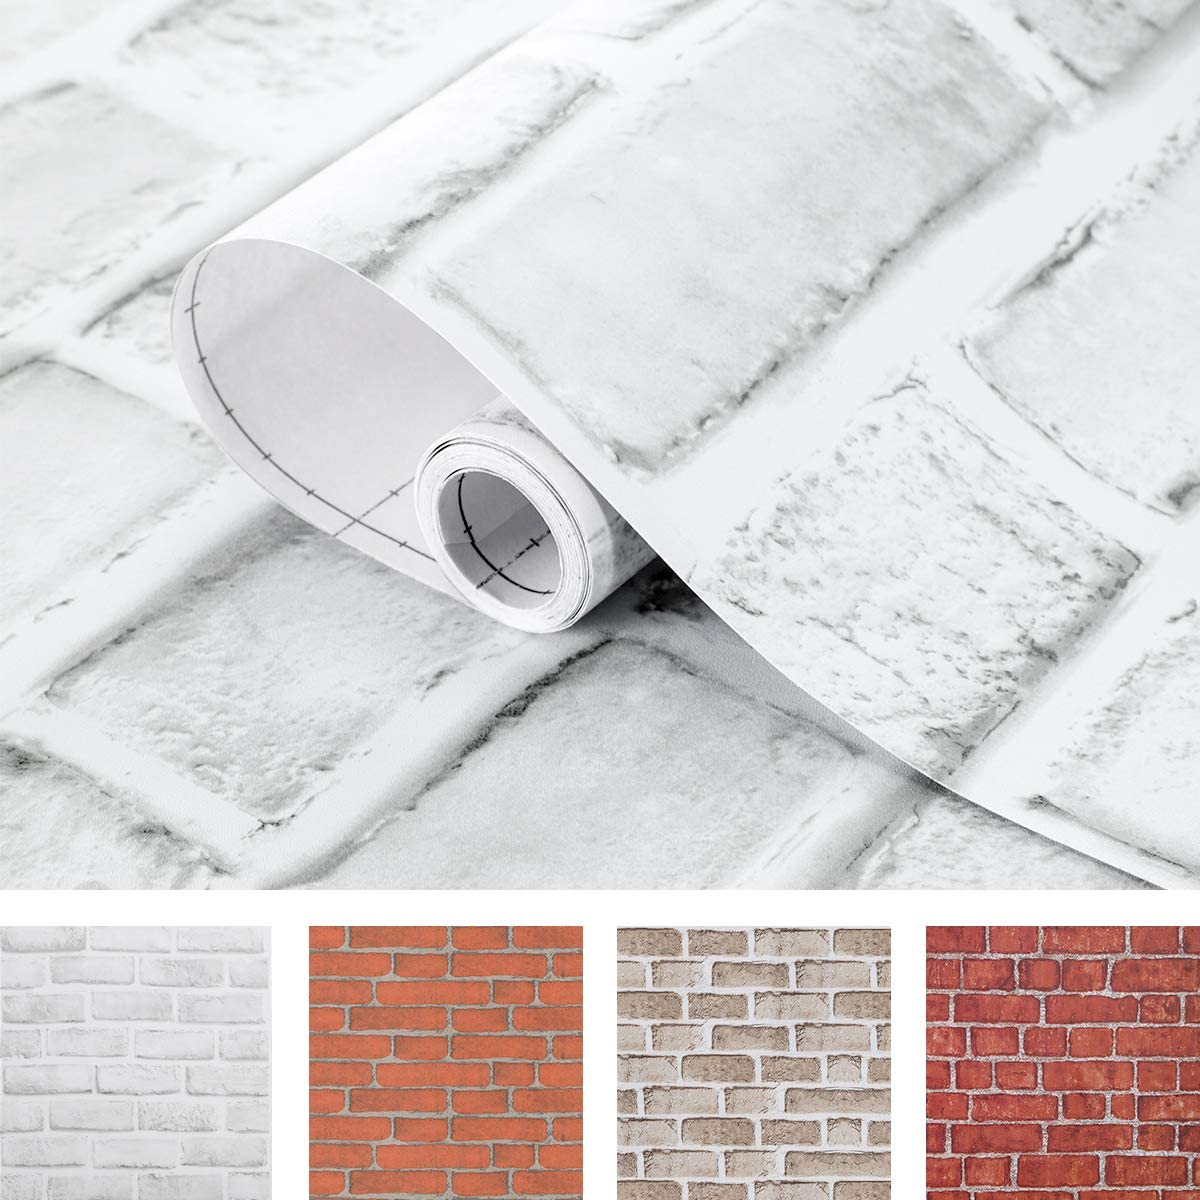 Coavas White Brick Wallpaper 17.7x196.9 Inches Self-Adhesive Peel and Stick Paper Decorative Easy to Stick Faux Brick Printed Waterproof Stick Paper White